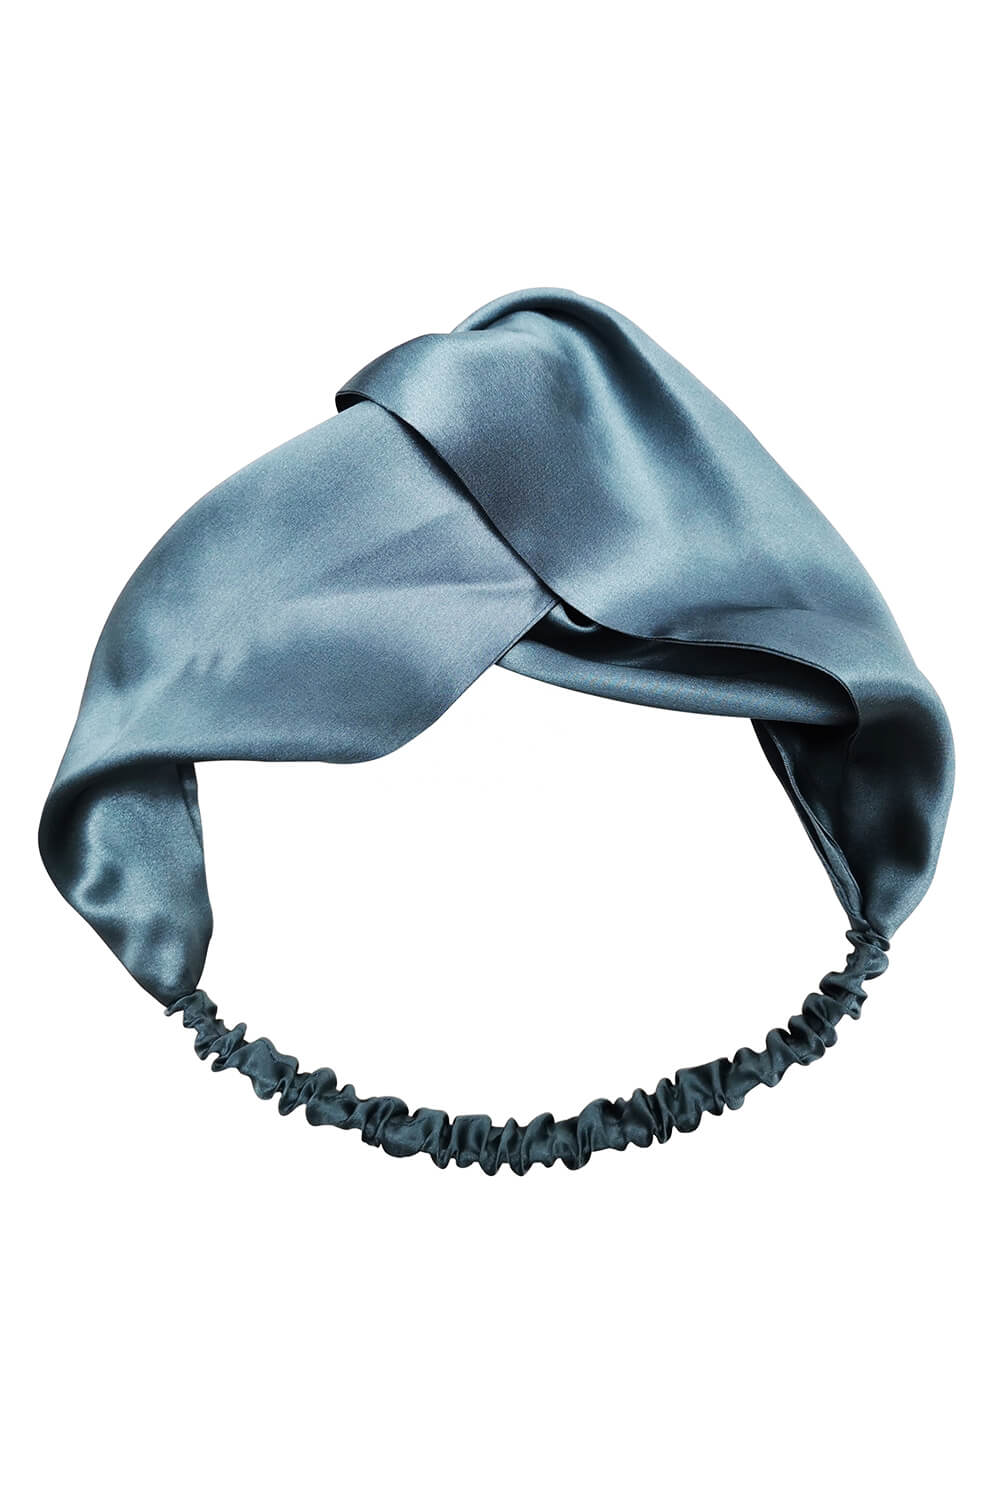 Silk Headband - Provincial Blue